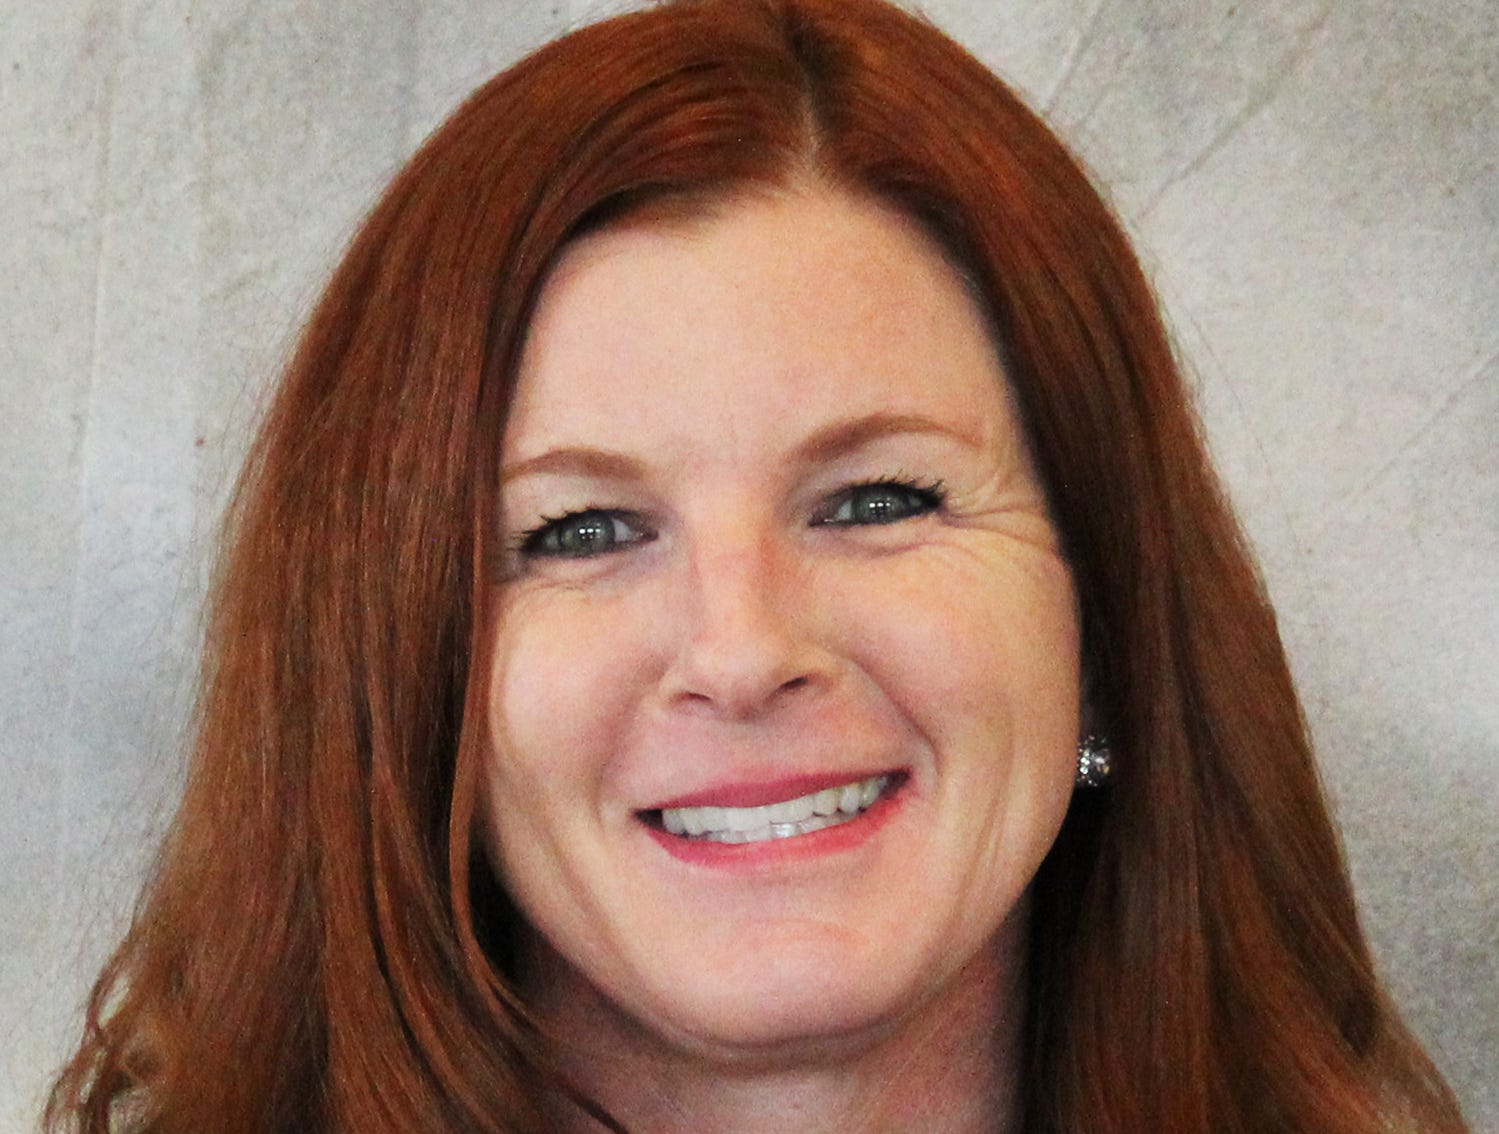 Melisa Lunderville: Assistant superintendent, student services, Santa Cruz Valley Unified School District, Rio Rico.